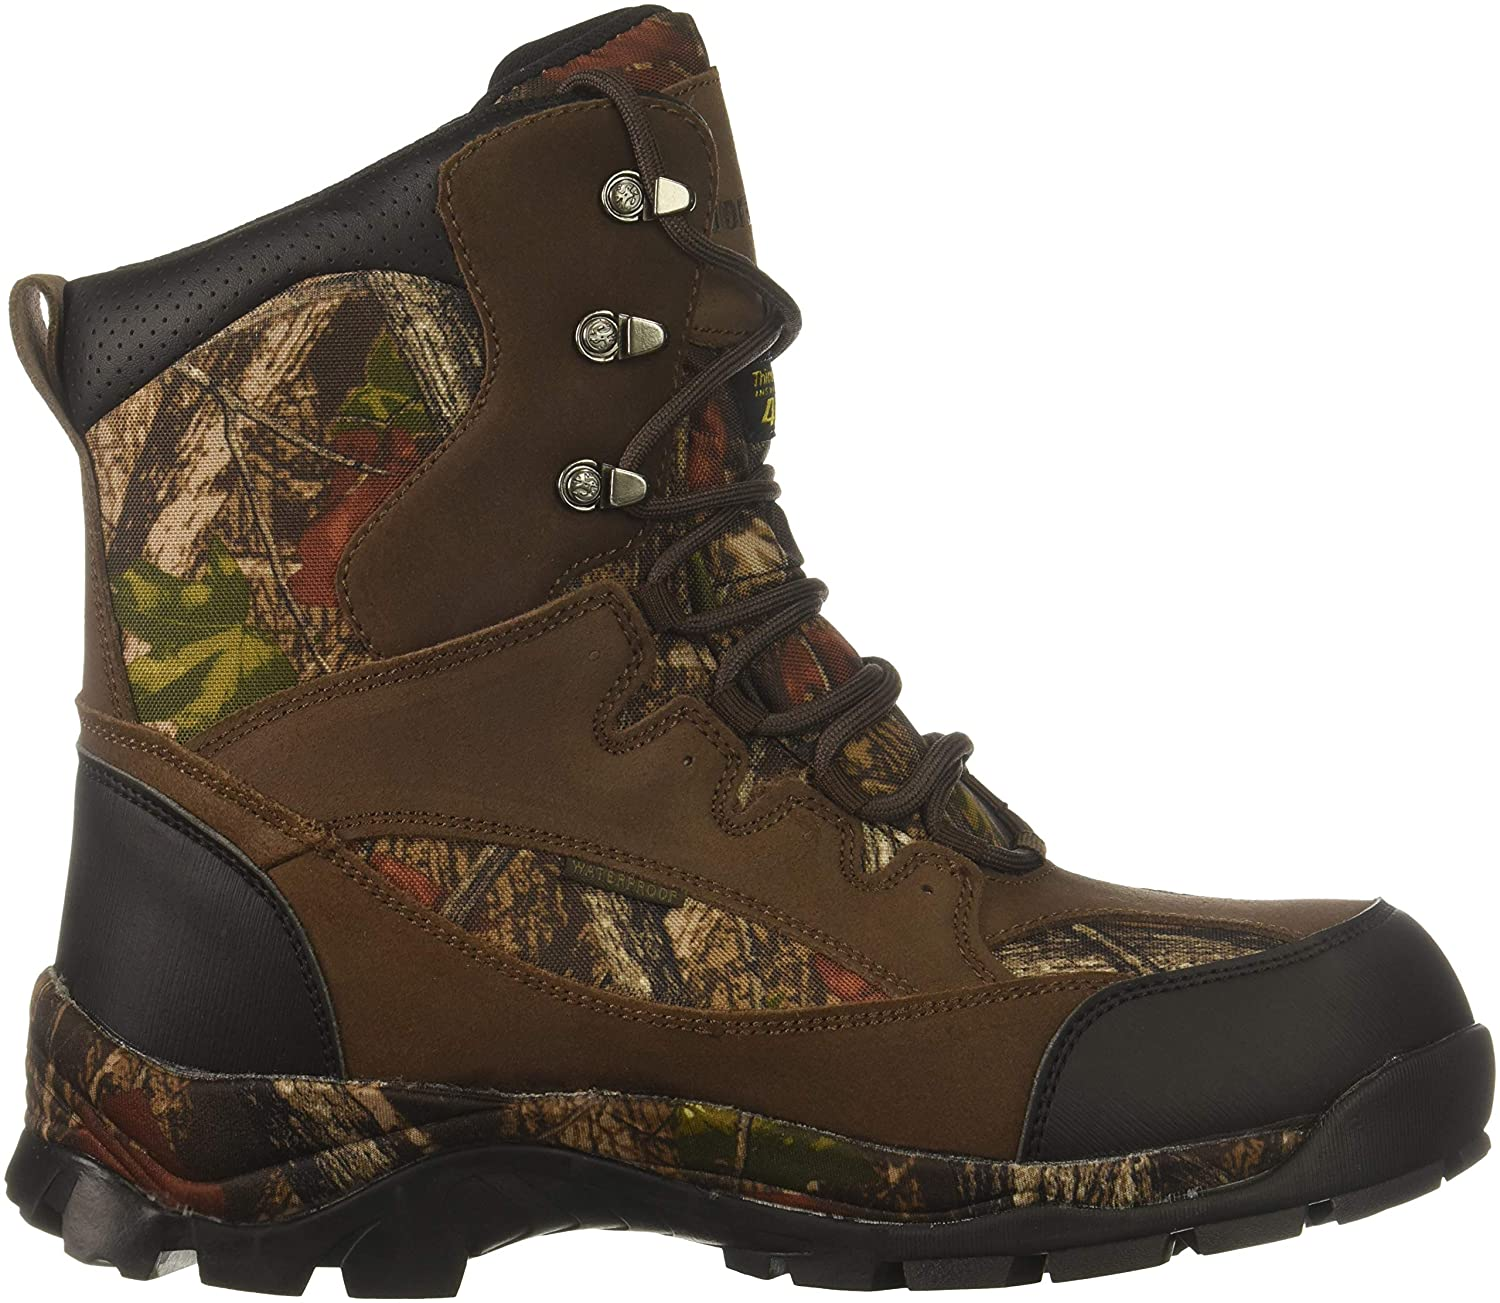 Northside Mens Renegade 400 Backpacking Boot